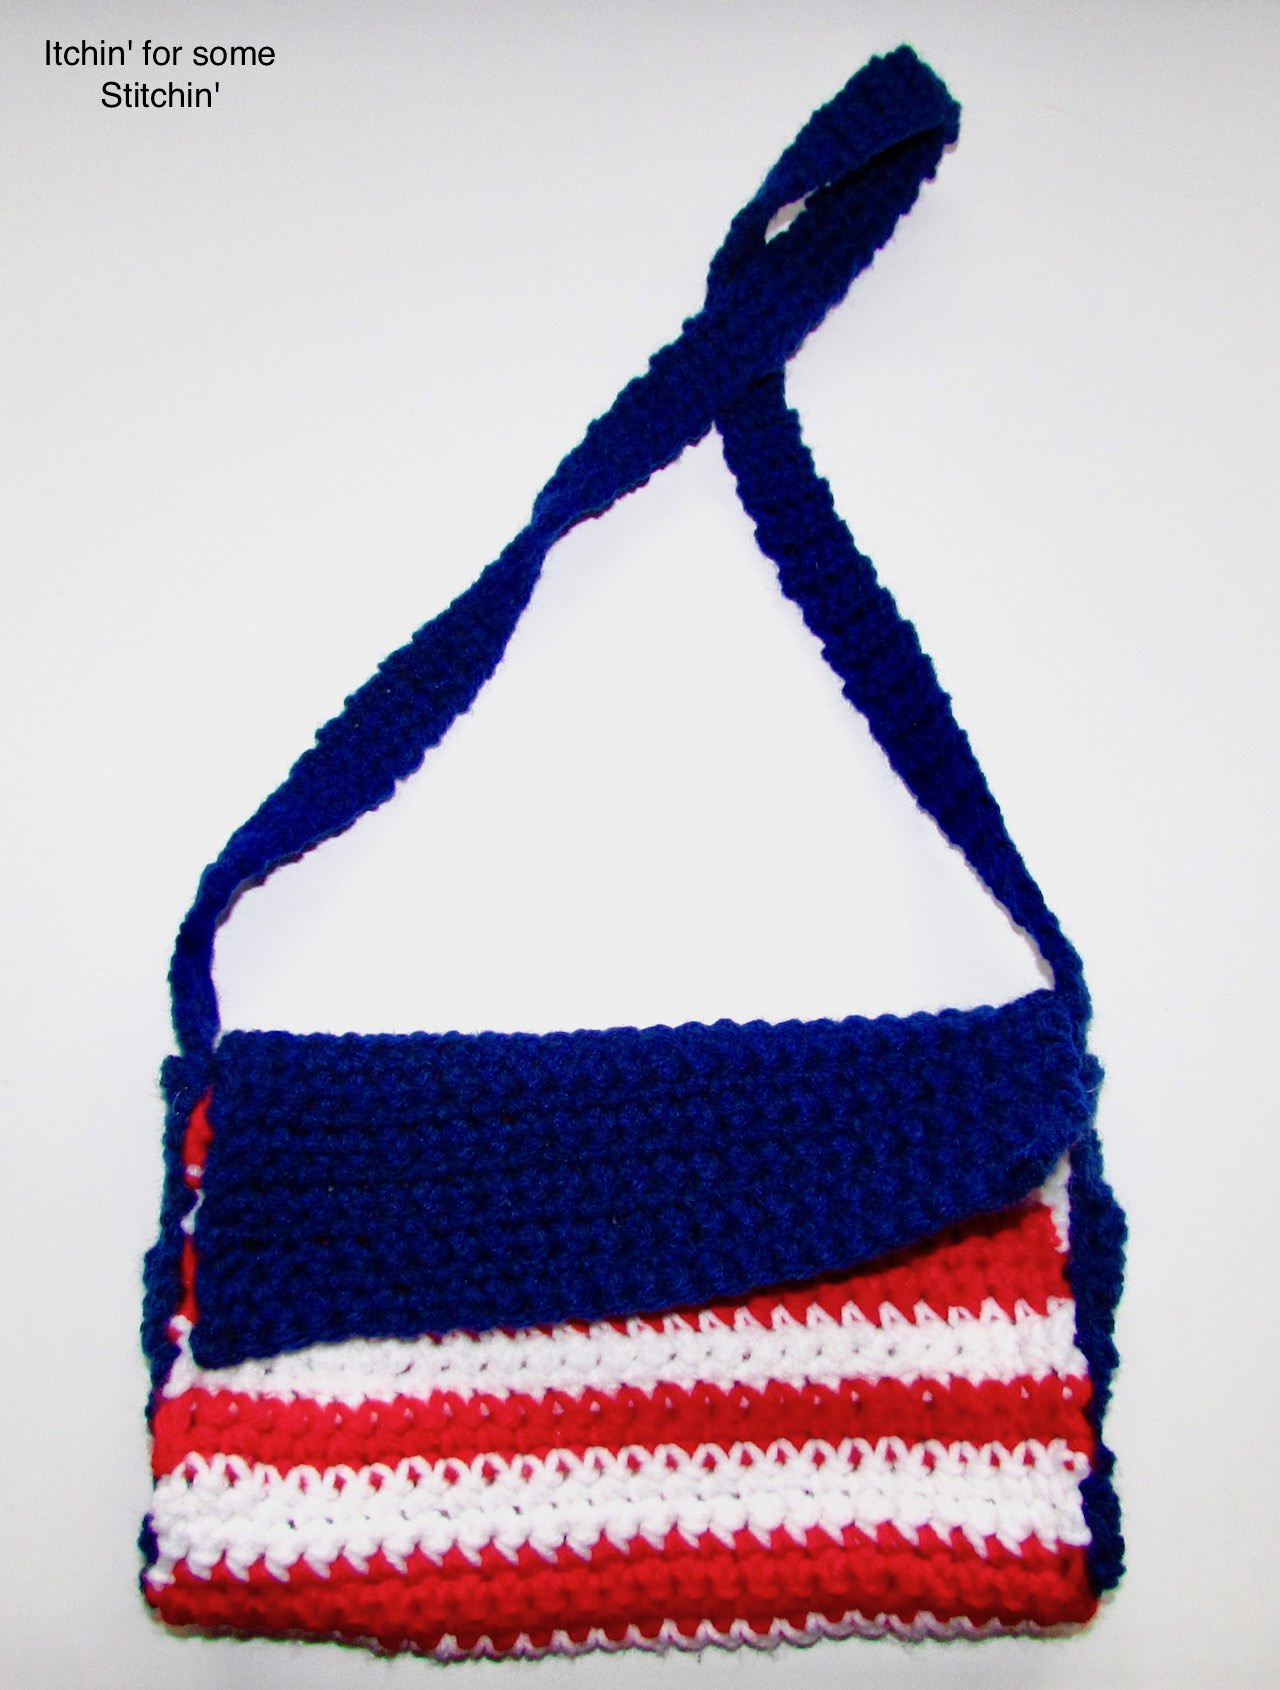 Crochet 4th of July Purse by www.itchinforsomestitchin.com